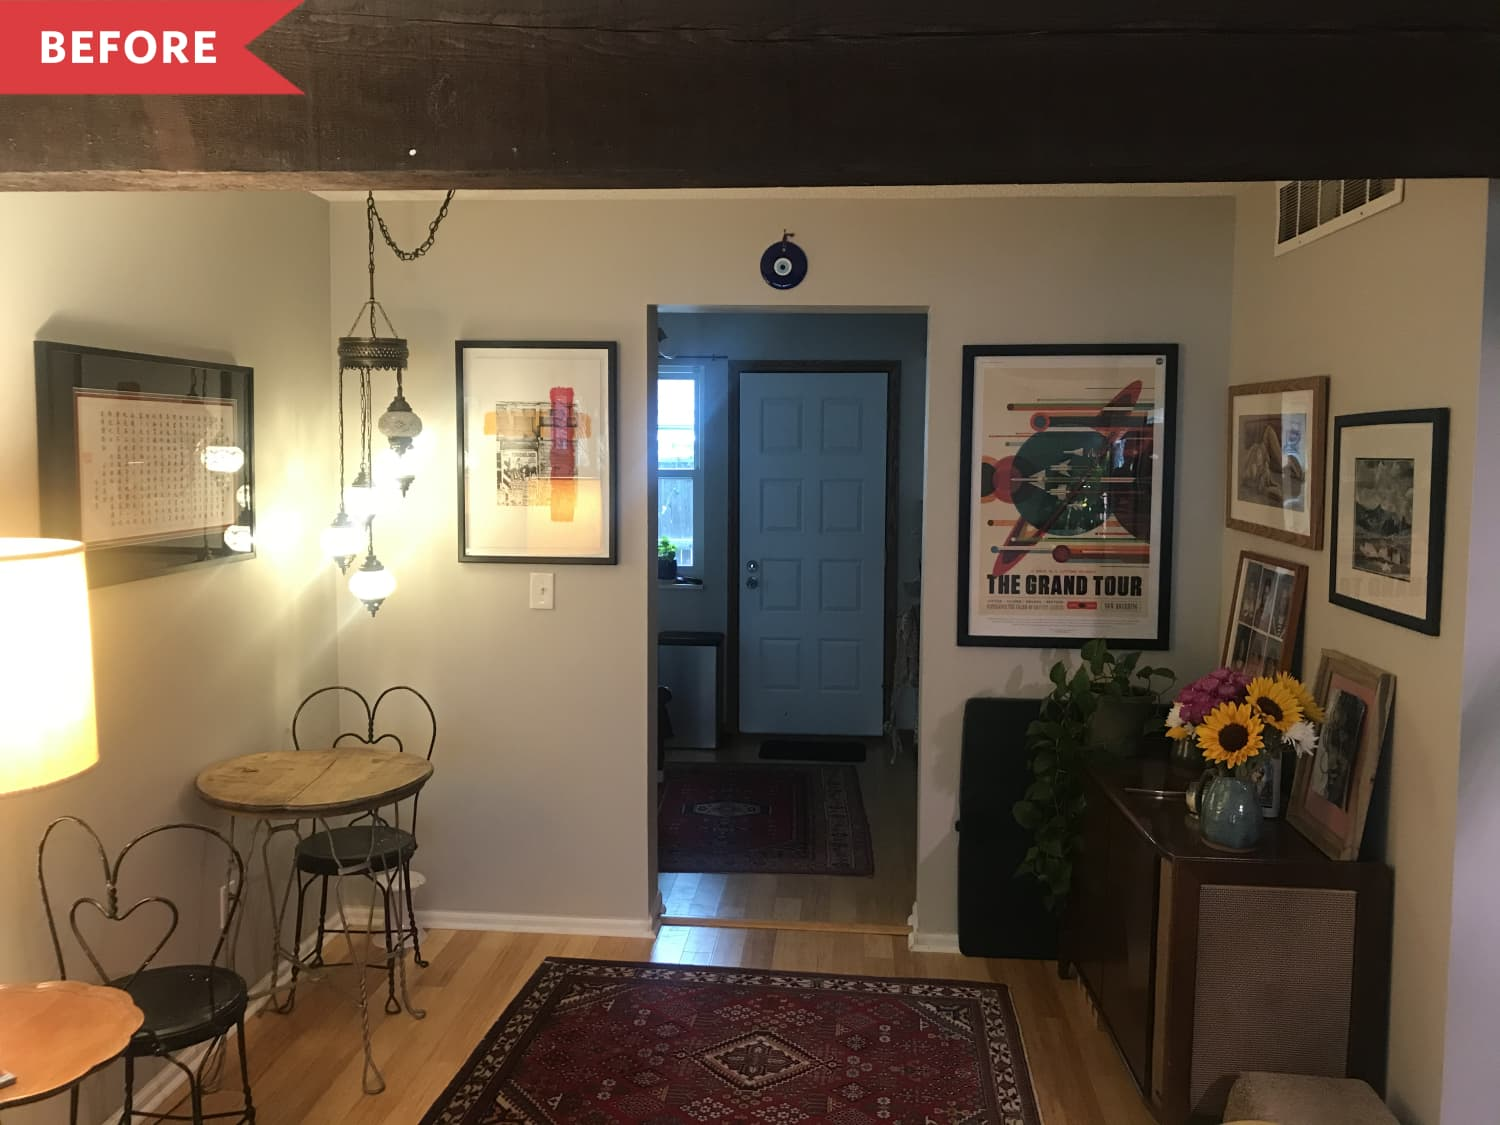 Before and After: A $20 Afternoon Project Makes This Living Room Pop